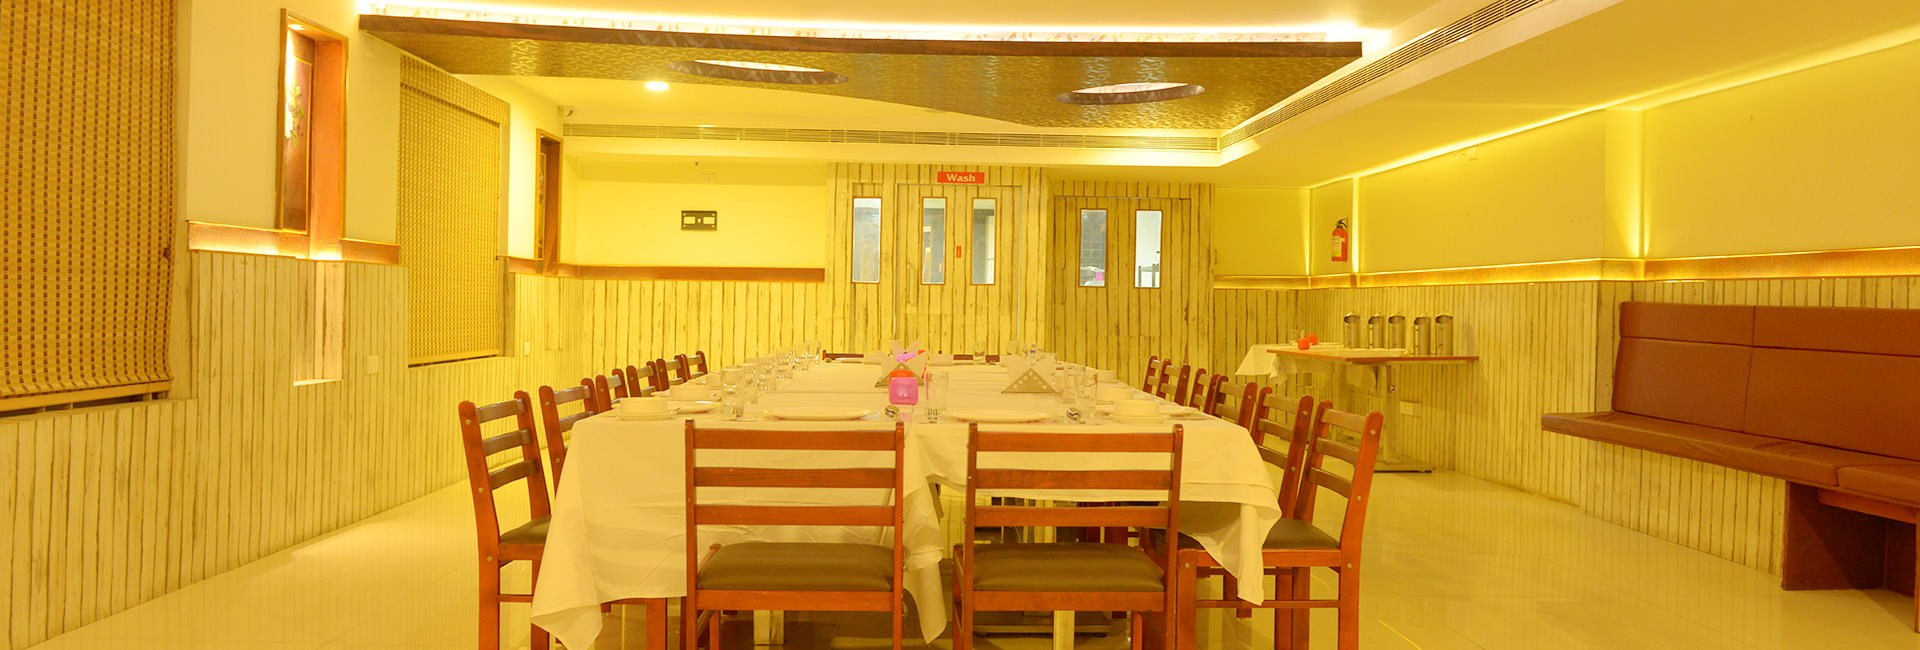 Banquet Hall in yelagiri